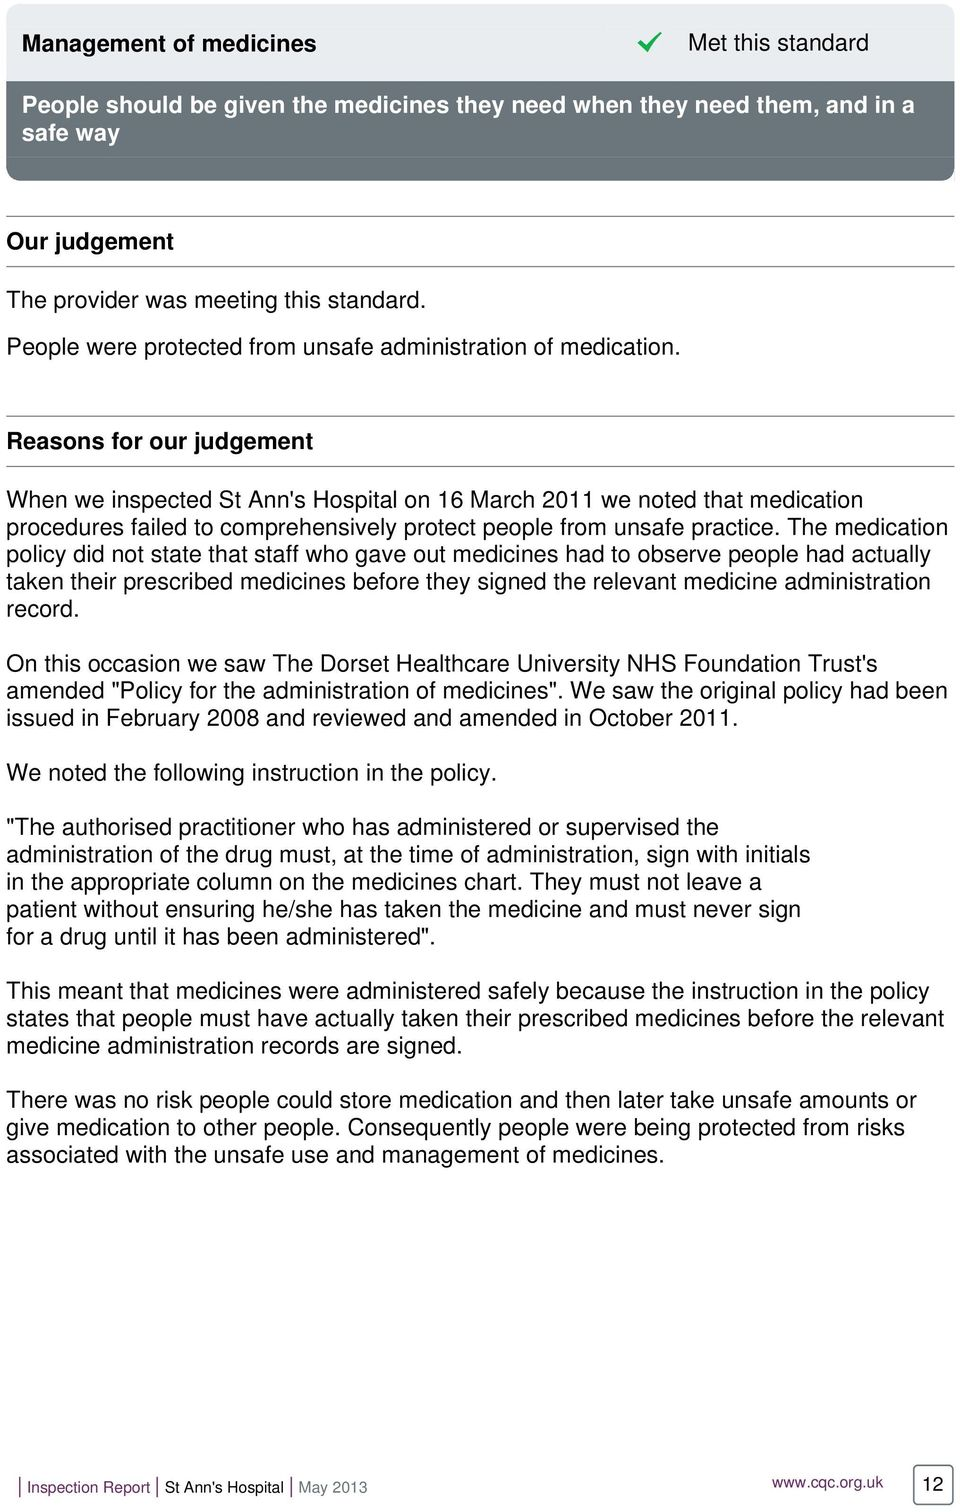 Reasons for our judgement When we inspected St Ann's Hospital on 16 March 2011 we noted that medication procedures failed to comprehensively protect people from unsafe practice.